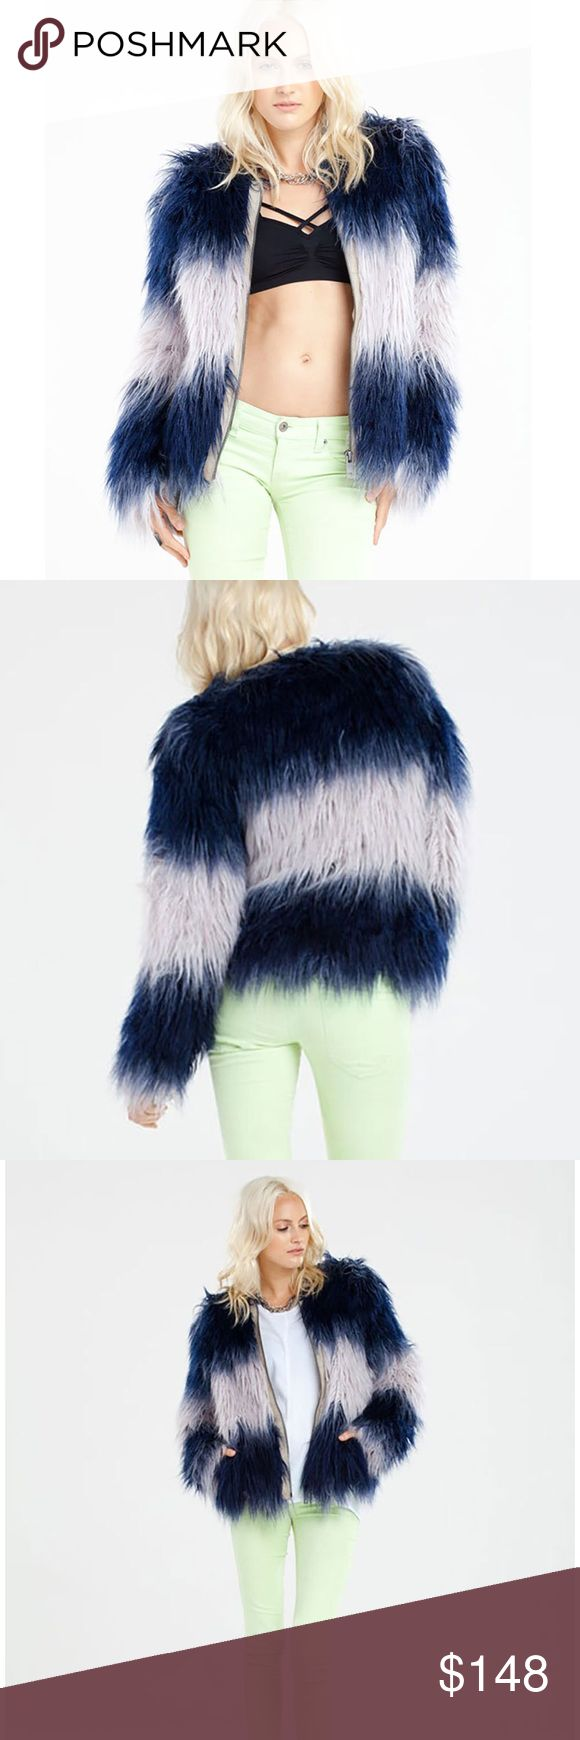 Nwt CHASER Brand Faux Fur Shag Coat Perfect for a concert, night out with friends, or anytime you want to kick up your ensemble a notch 💥 Luxe Faux Shag fur in a gorgeous blue ombré.   Brand new with tags.  Size small Chaser Jackets & Coats